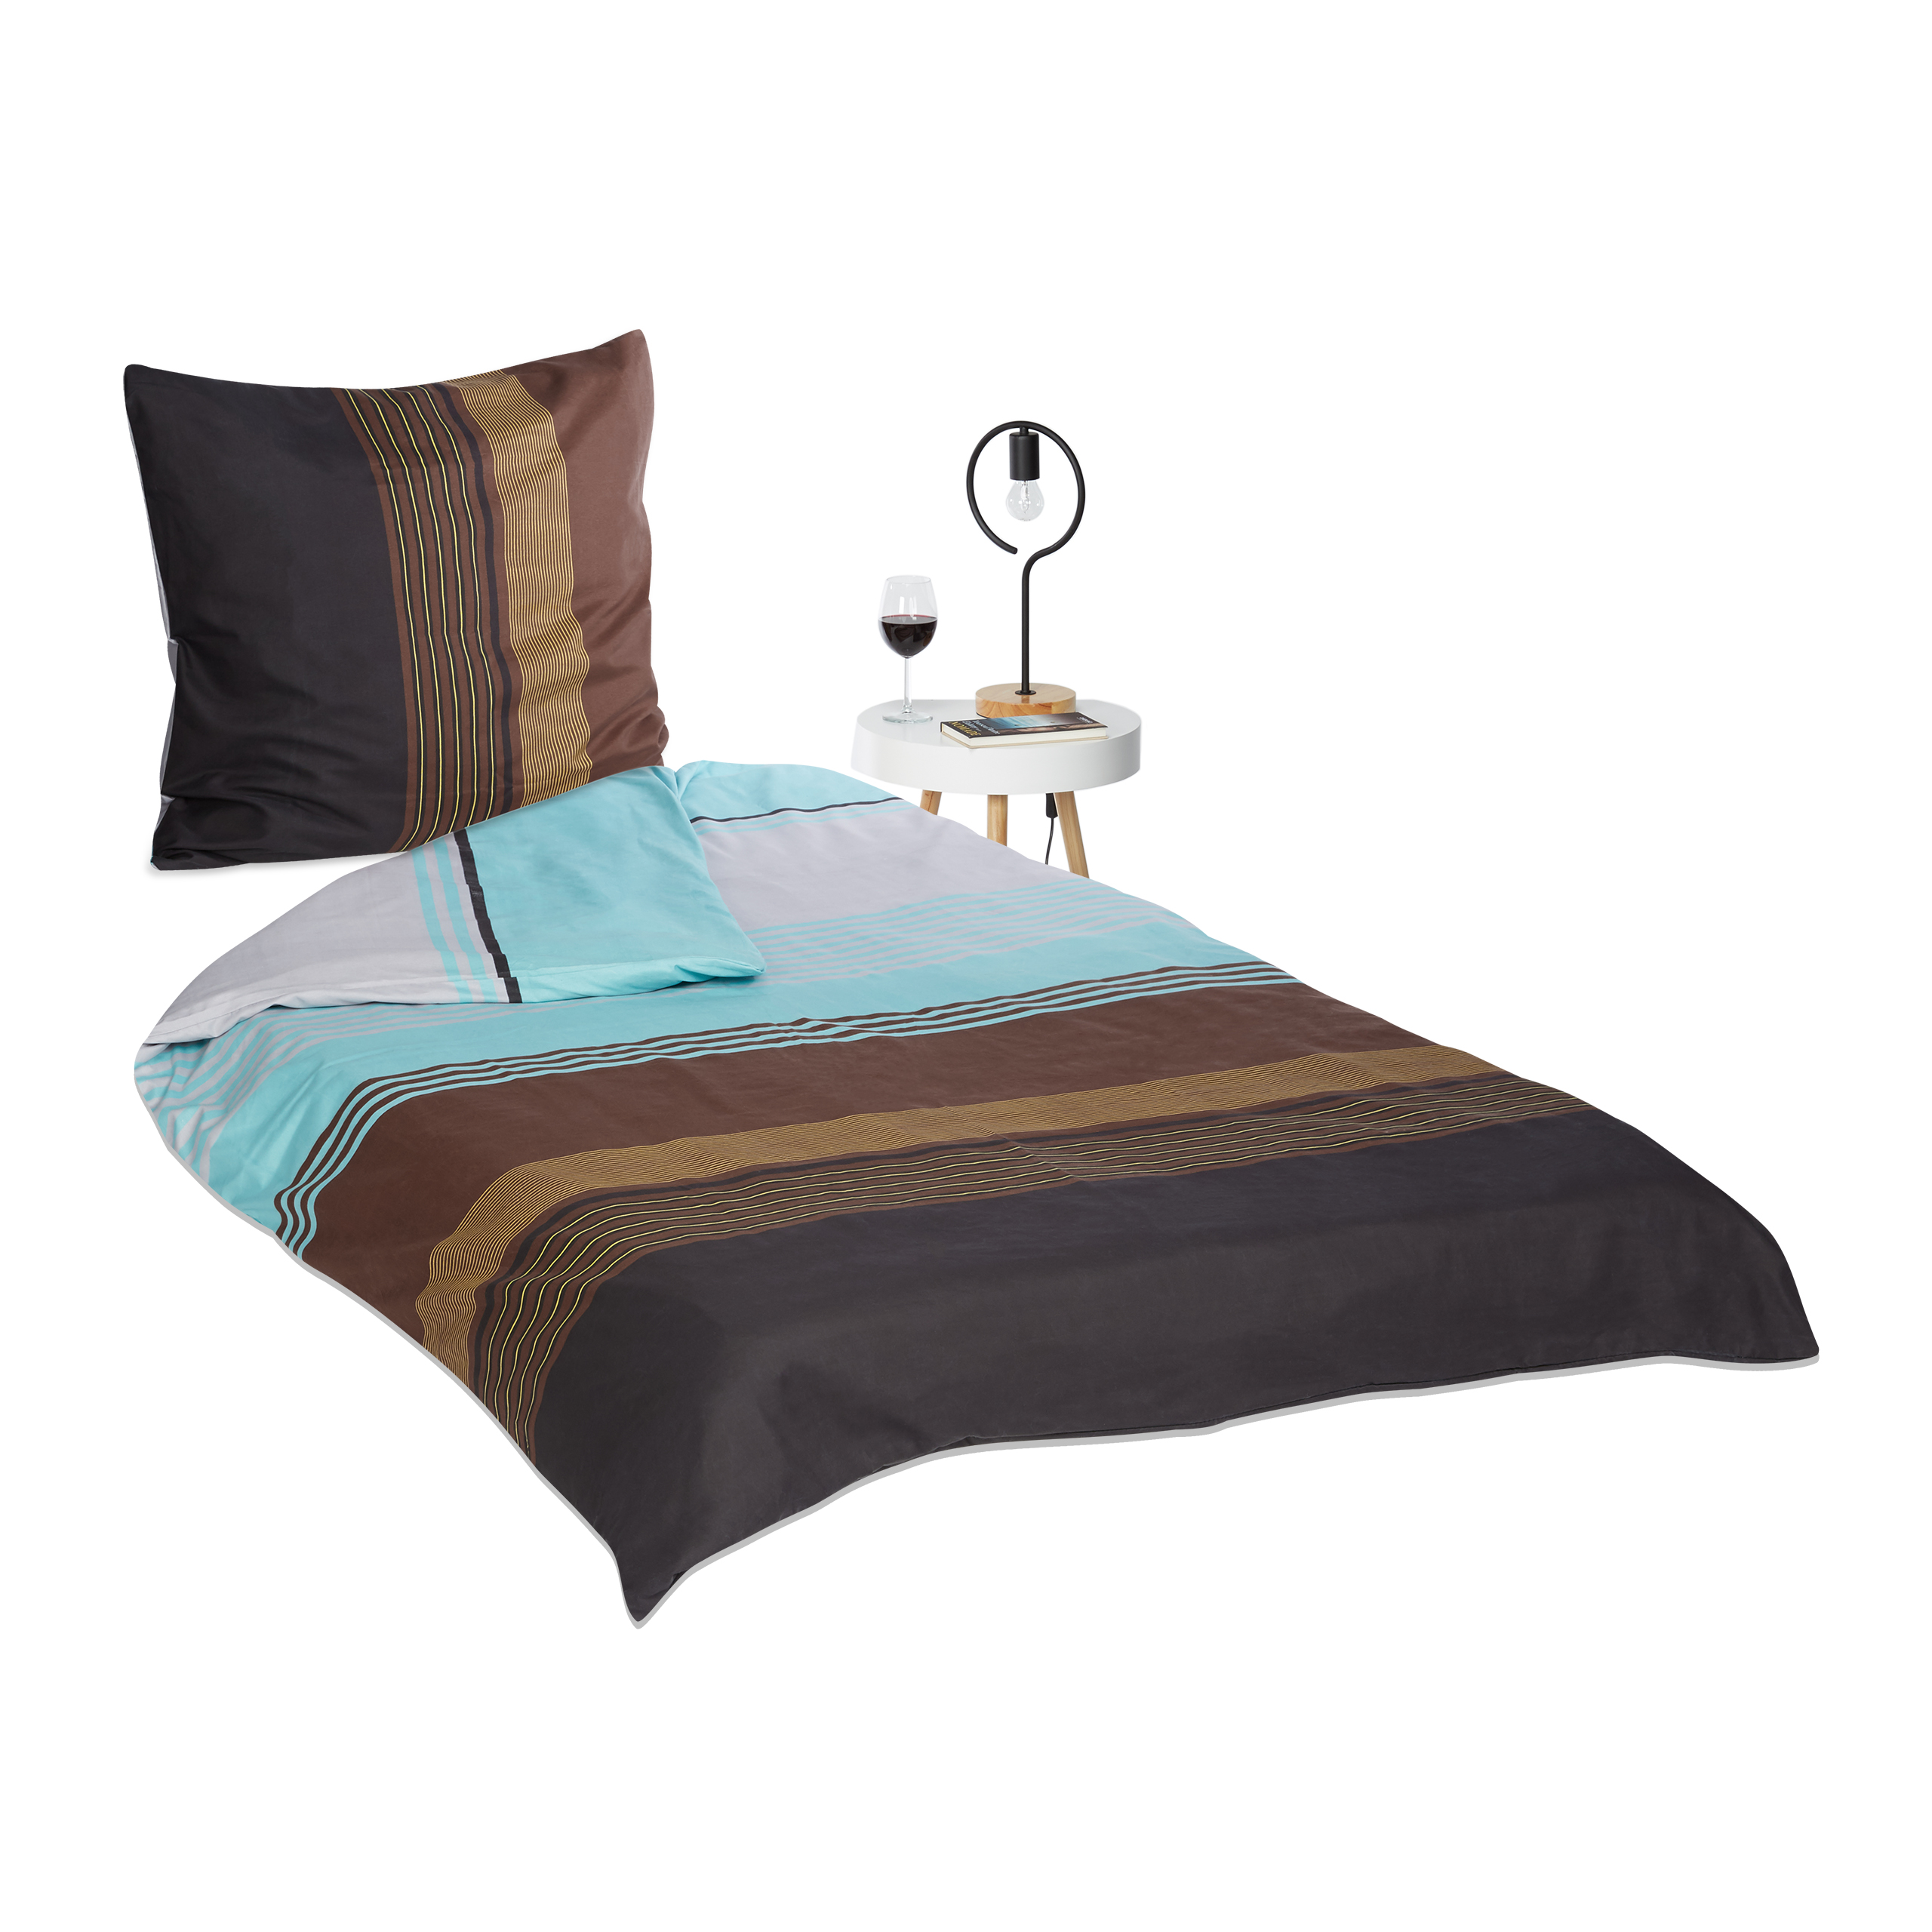 Bed-Sheet-Set-with-Blue-Stripe-Pattern-Bed-Covers-135-200-Pillow-Case-with-Zip